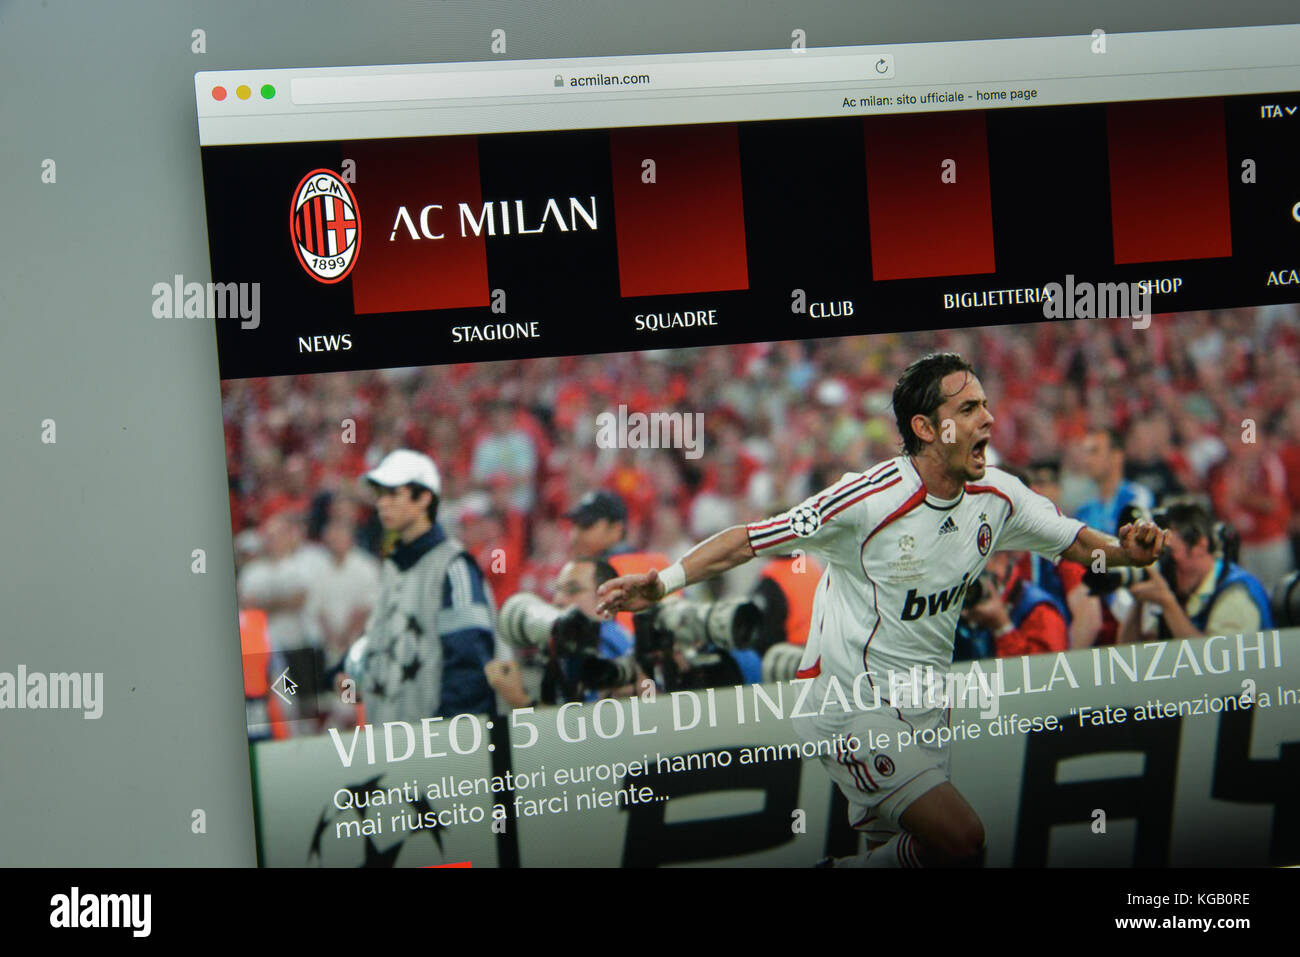 Milan Official High Resolution Stock Photography and Images - Alamy